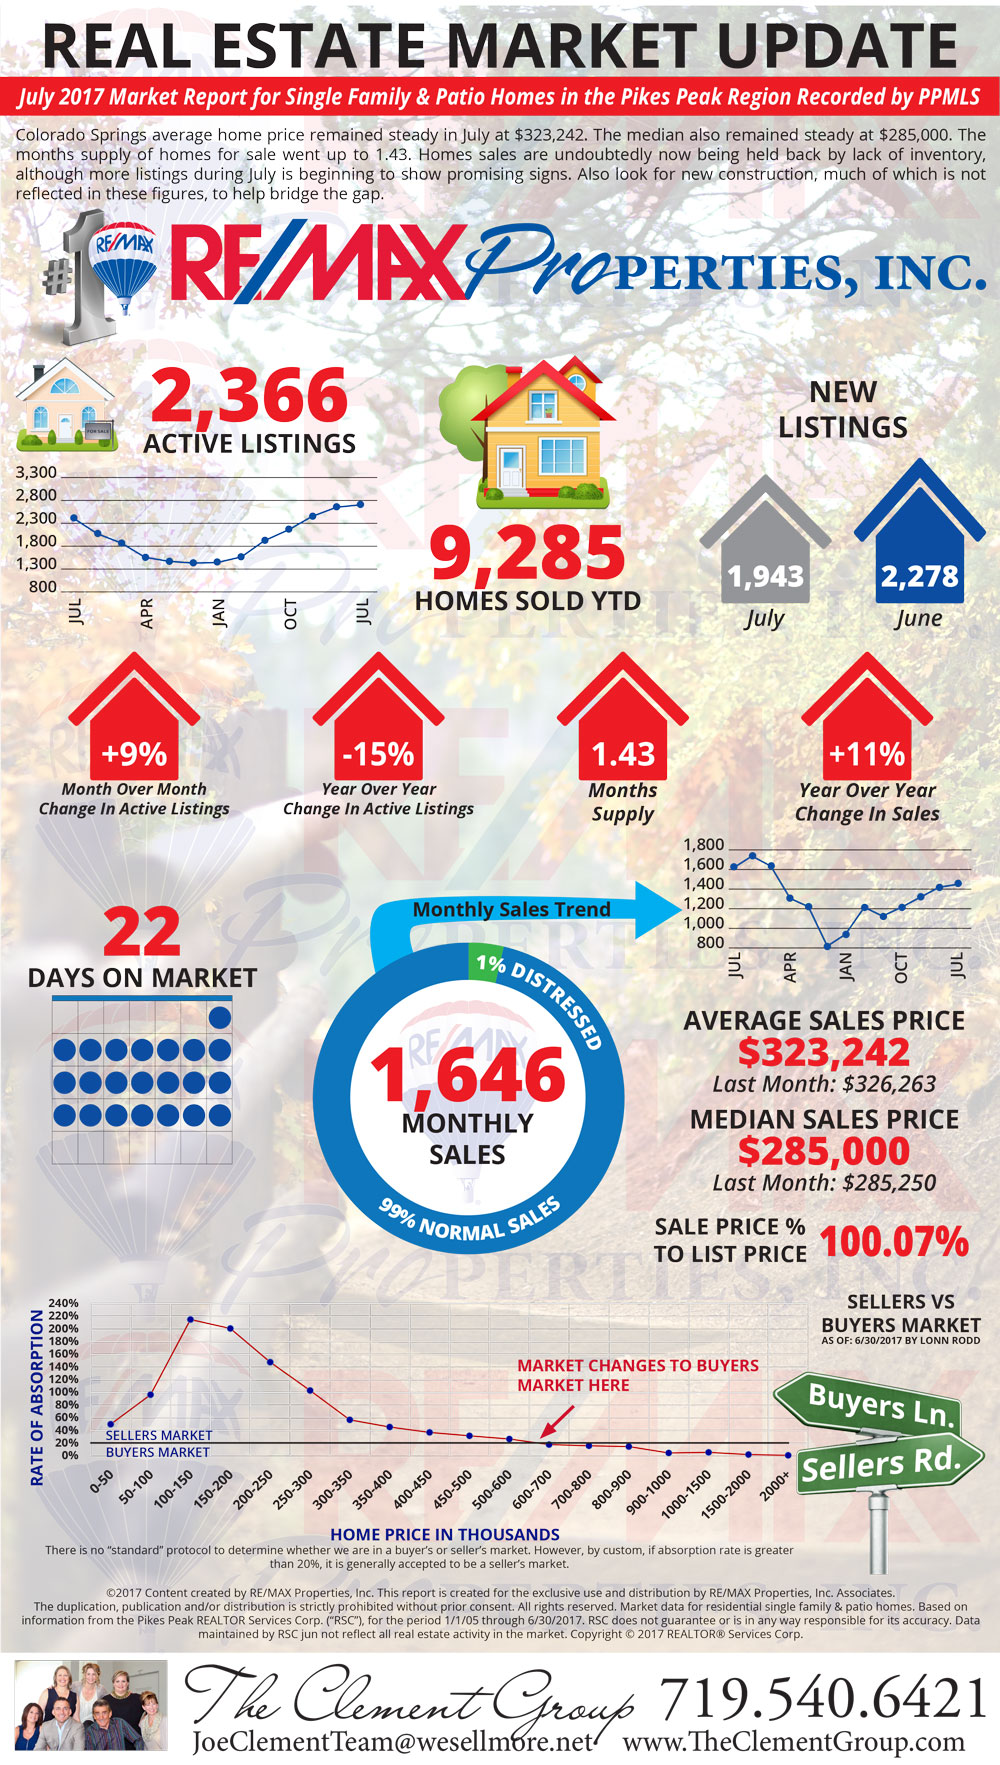 July 2017 Market Update - Colorado Springs Real Estate - The Clement Group